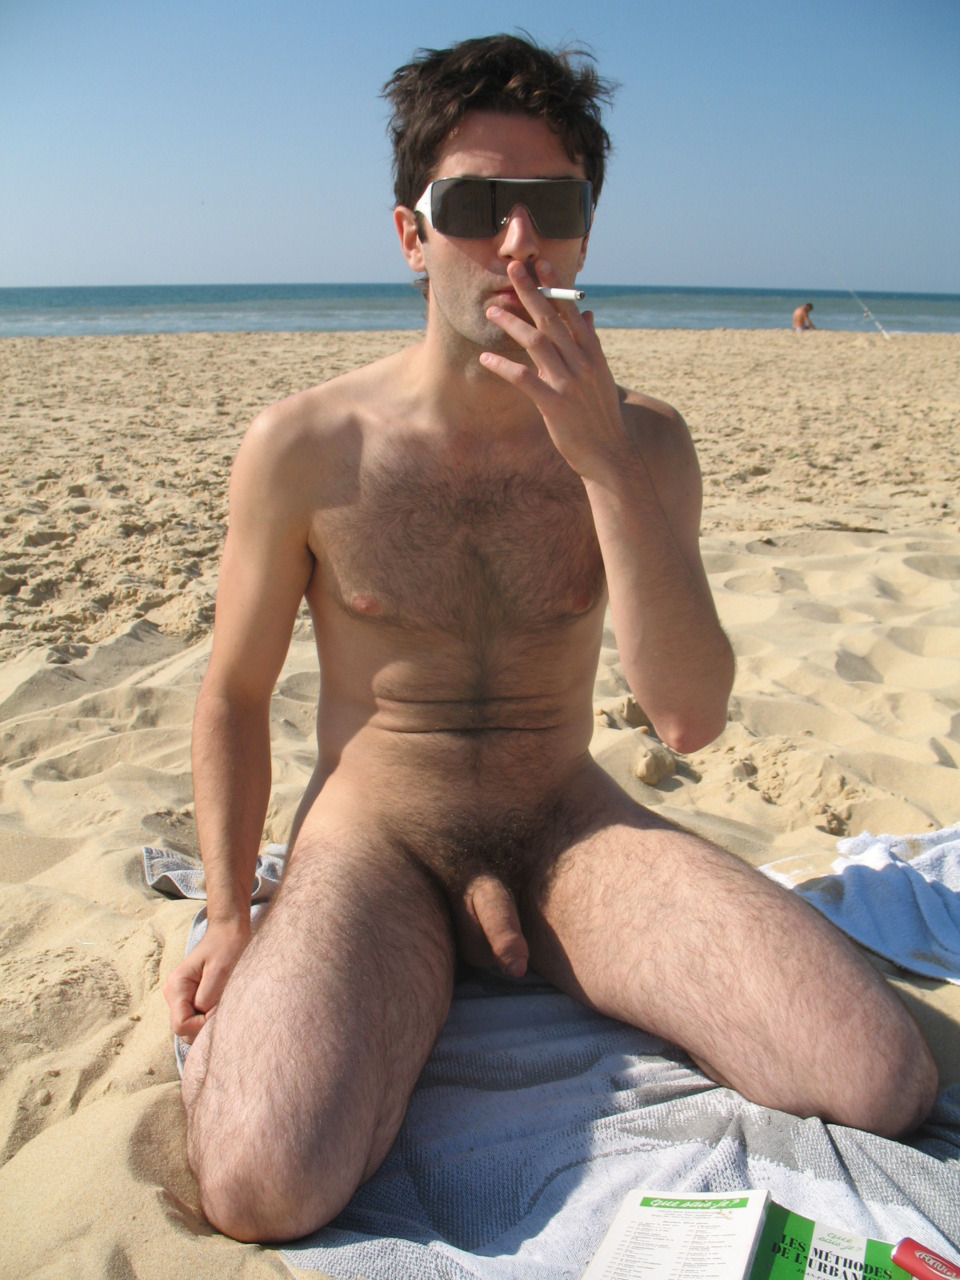 men beaches Naked in nude